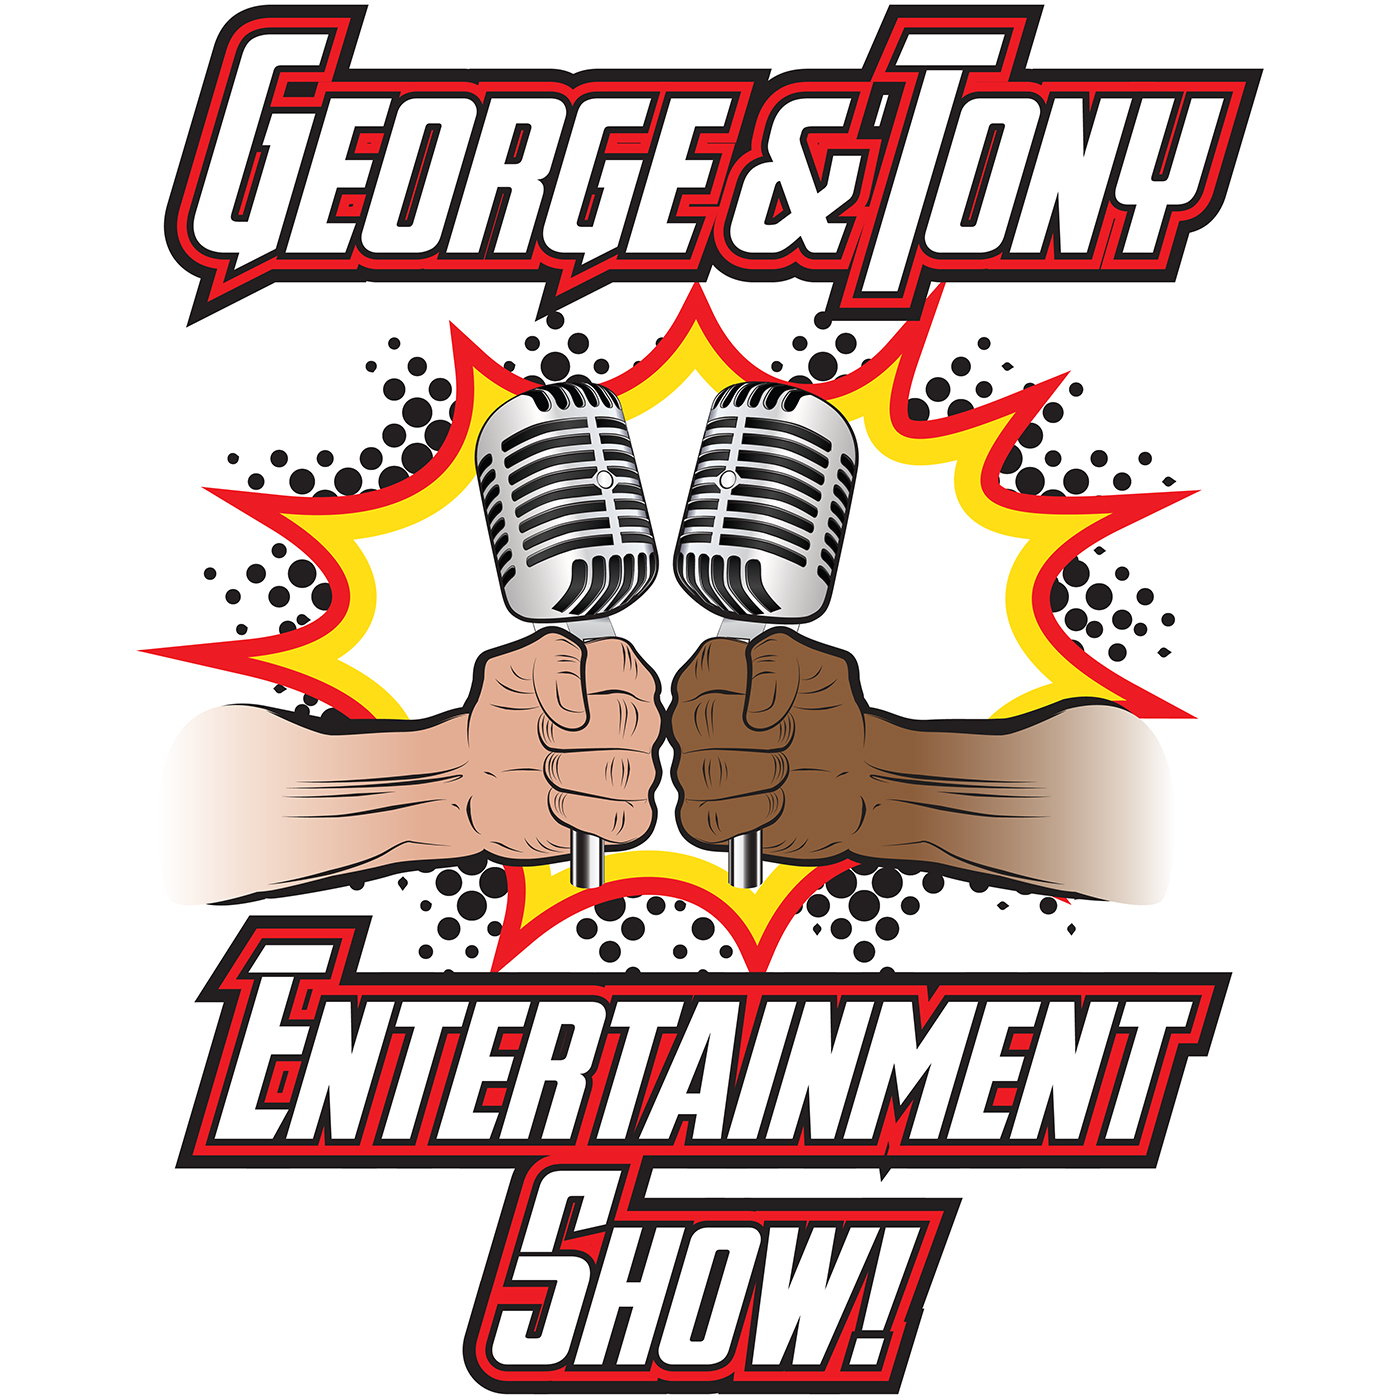 George and Tony Entertainment Show #97